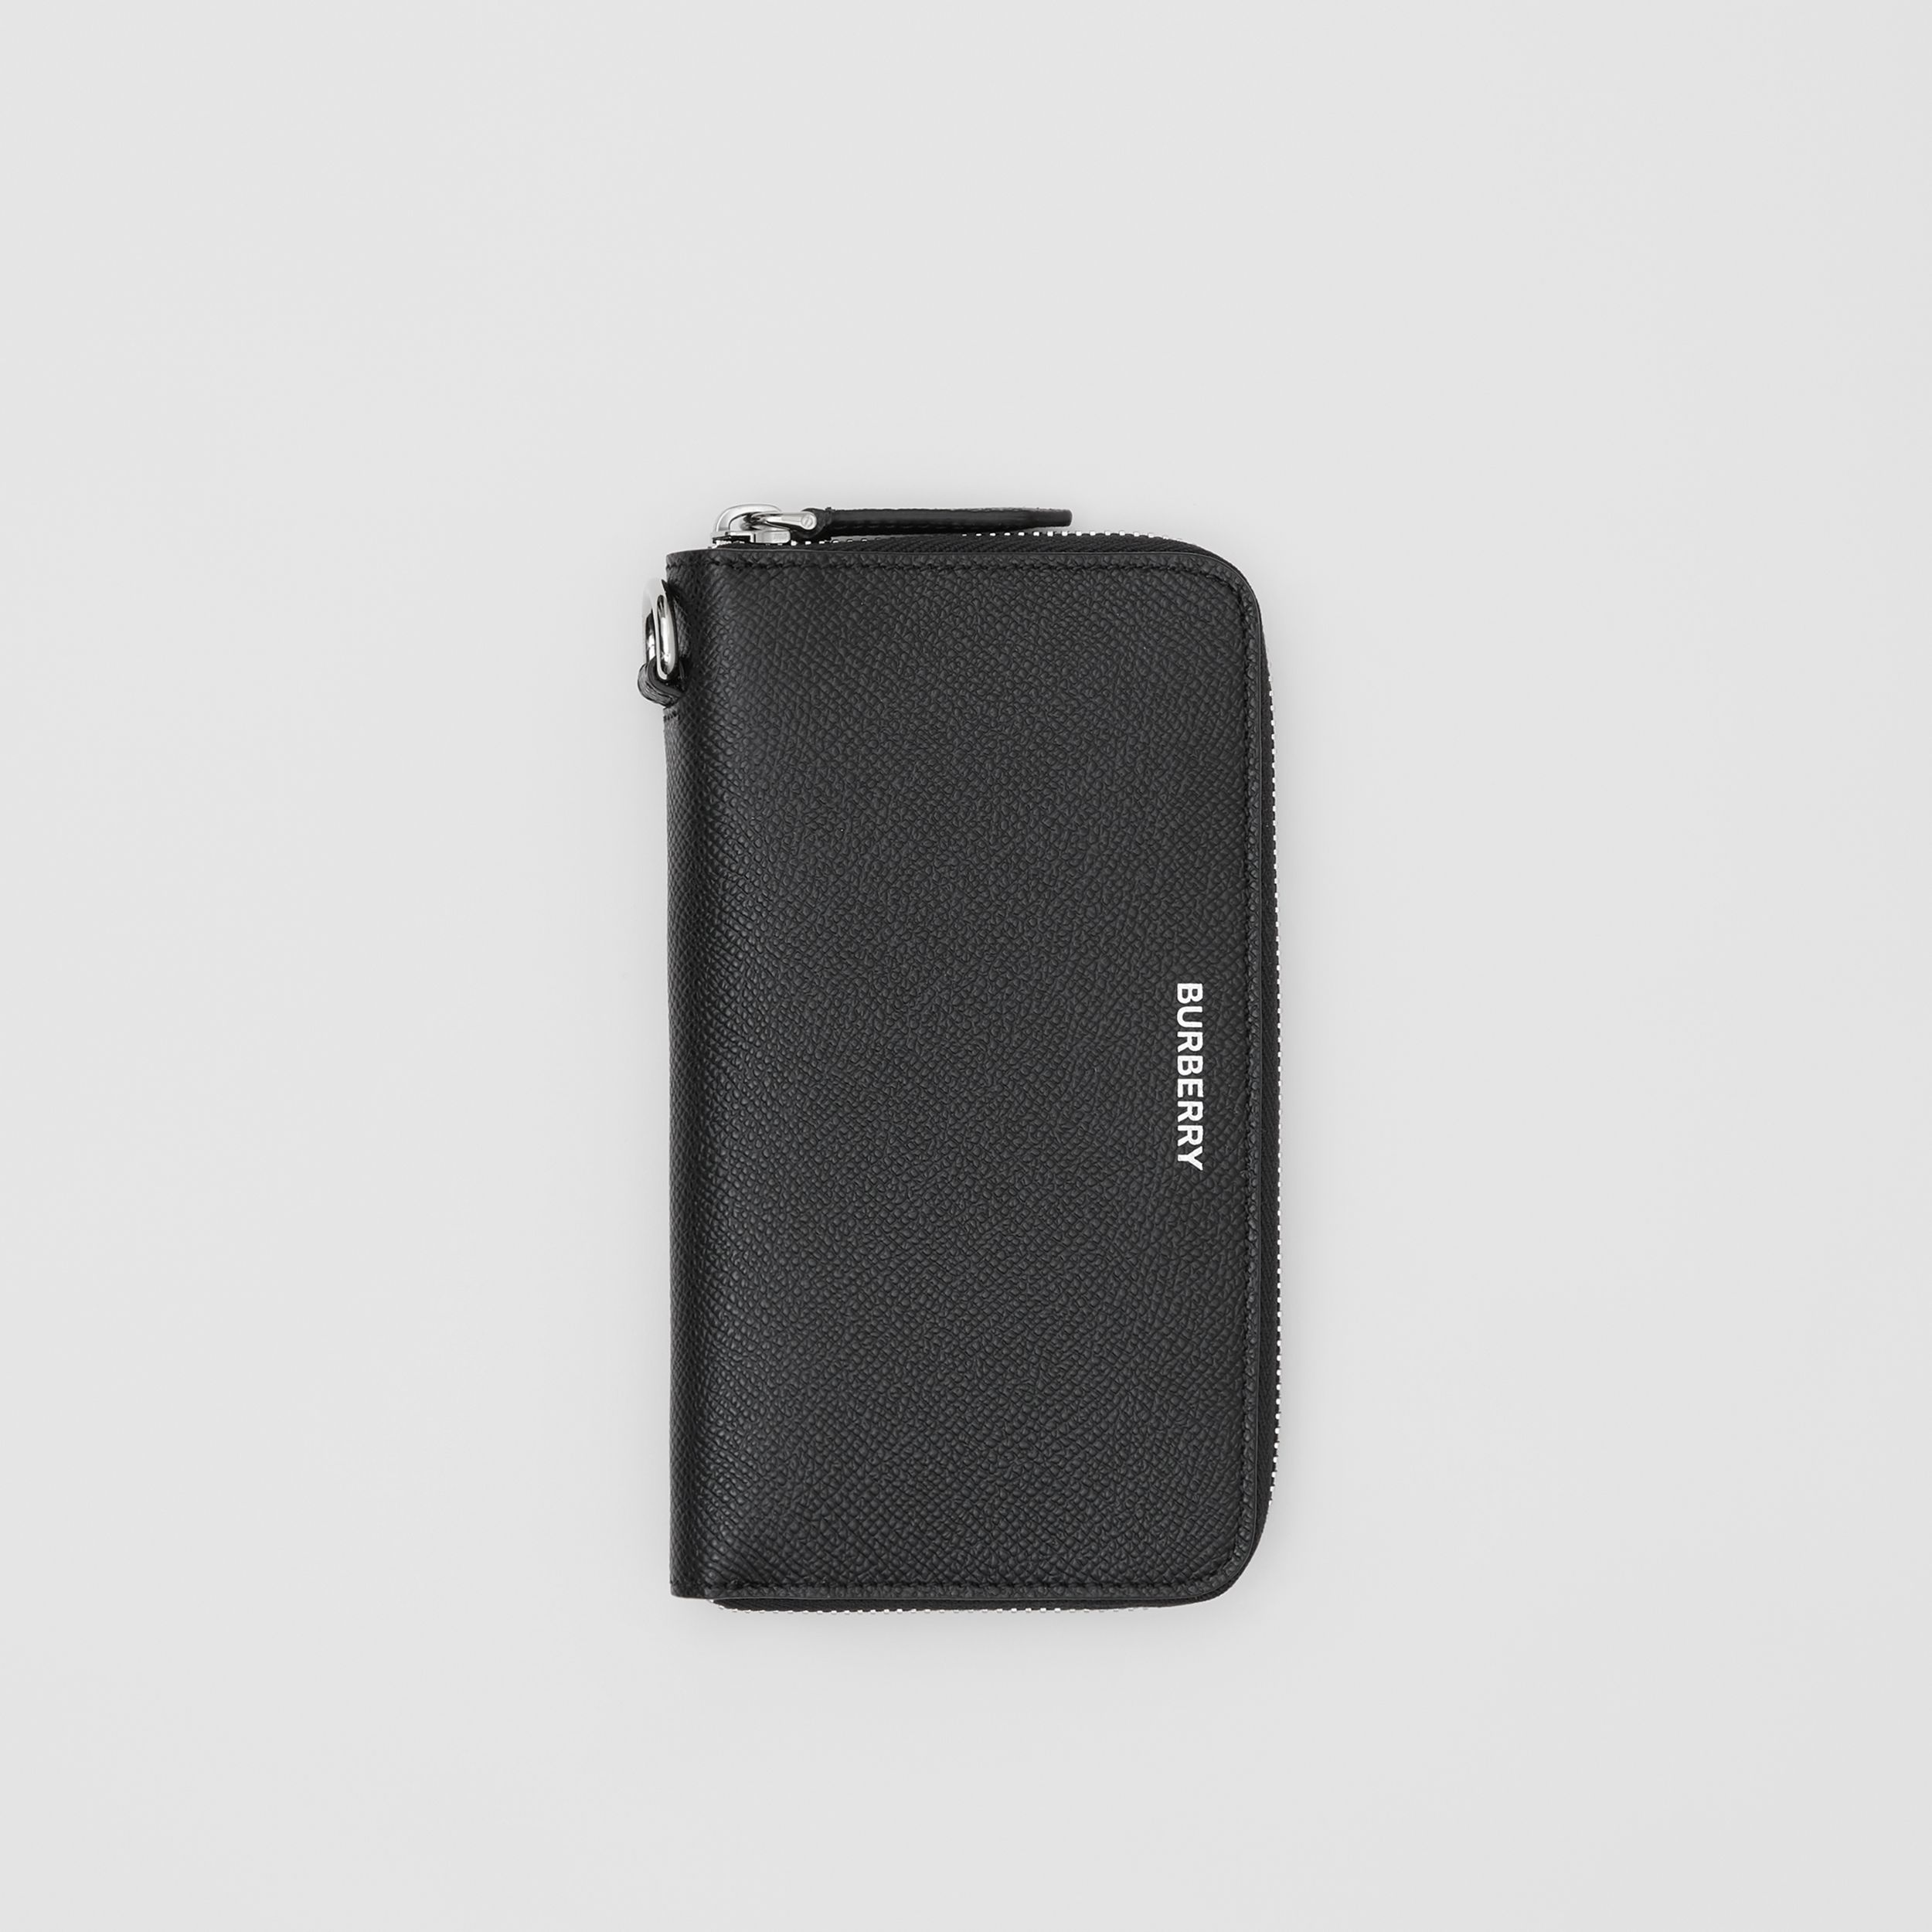 Grainy Leather Phone Wallet in Black - Men | Burberry - 1